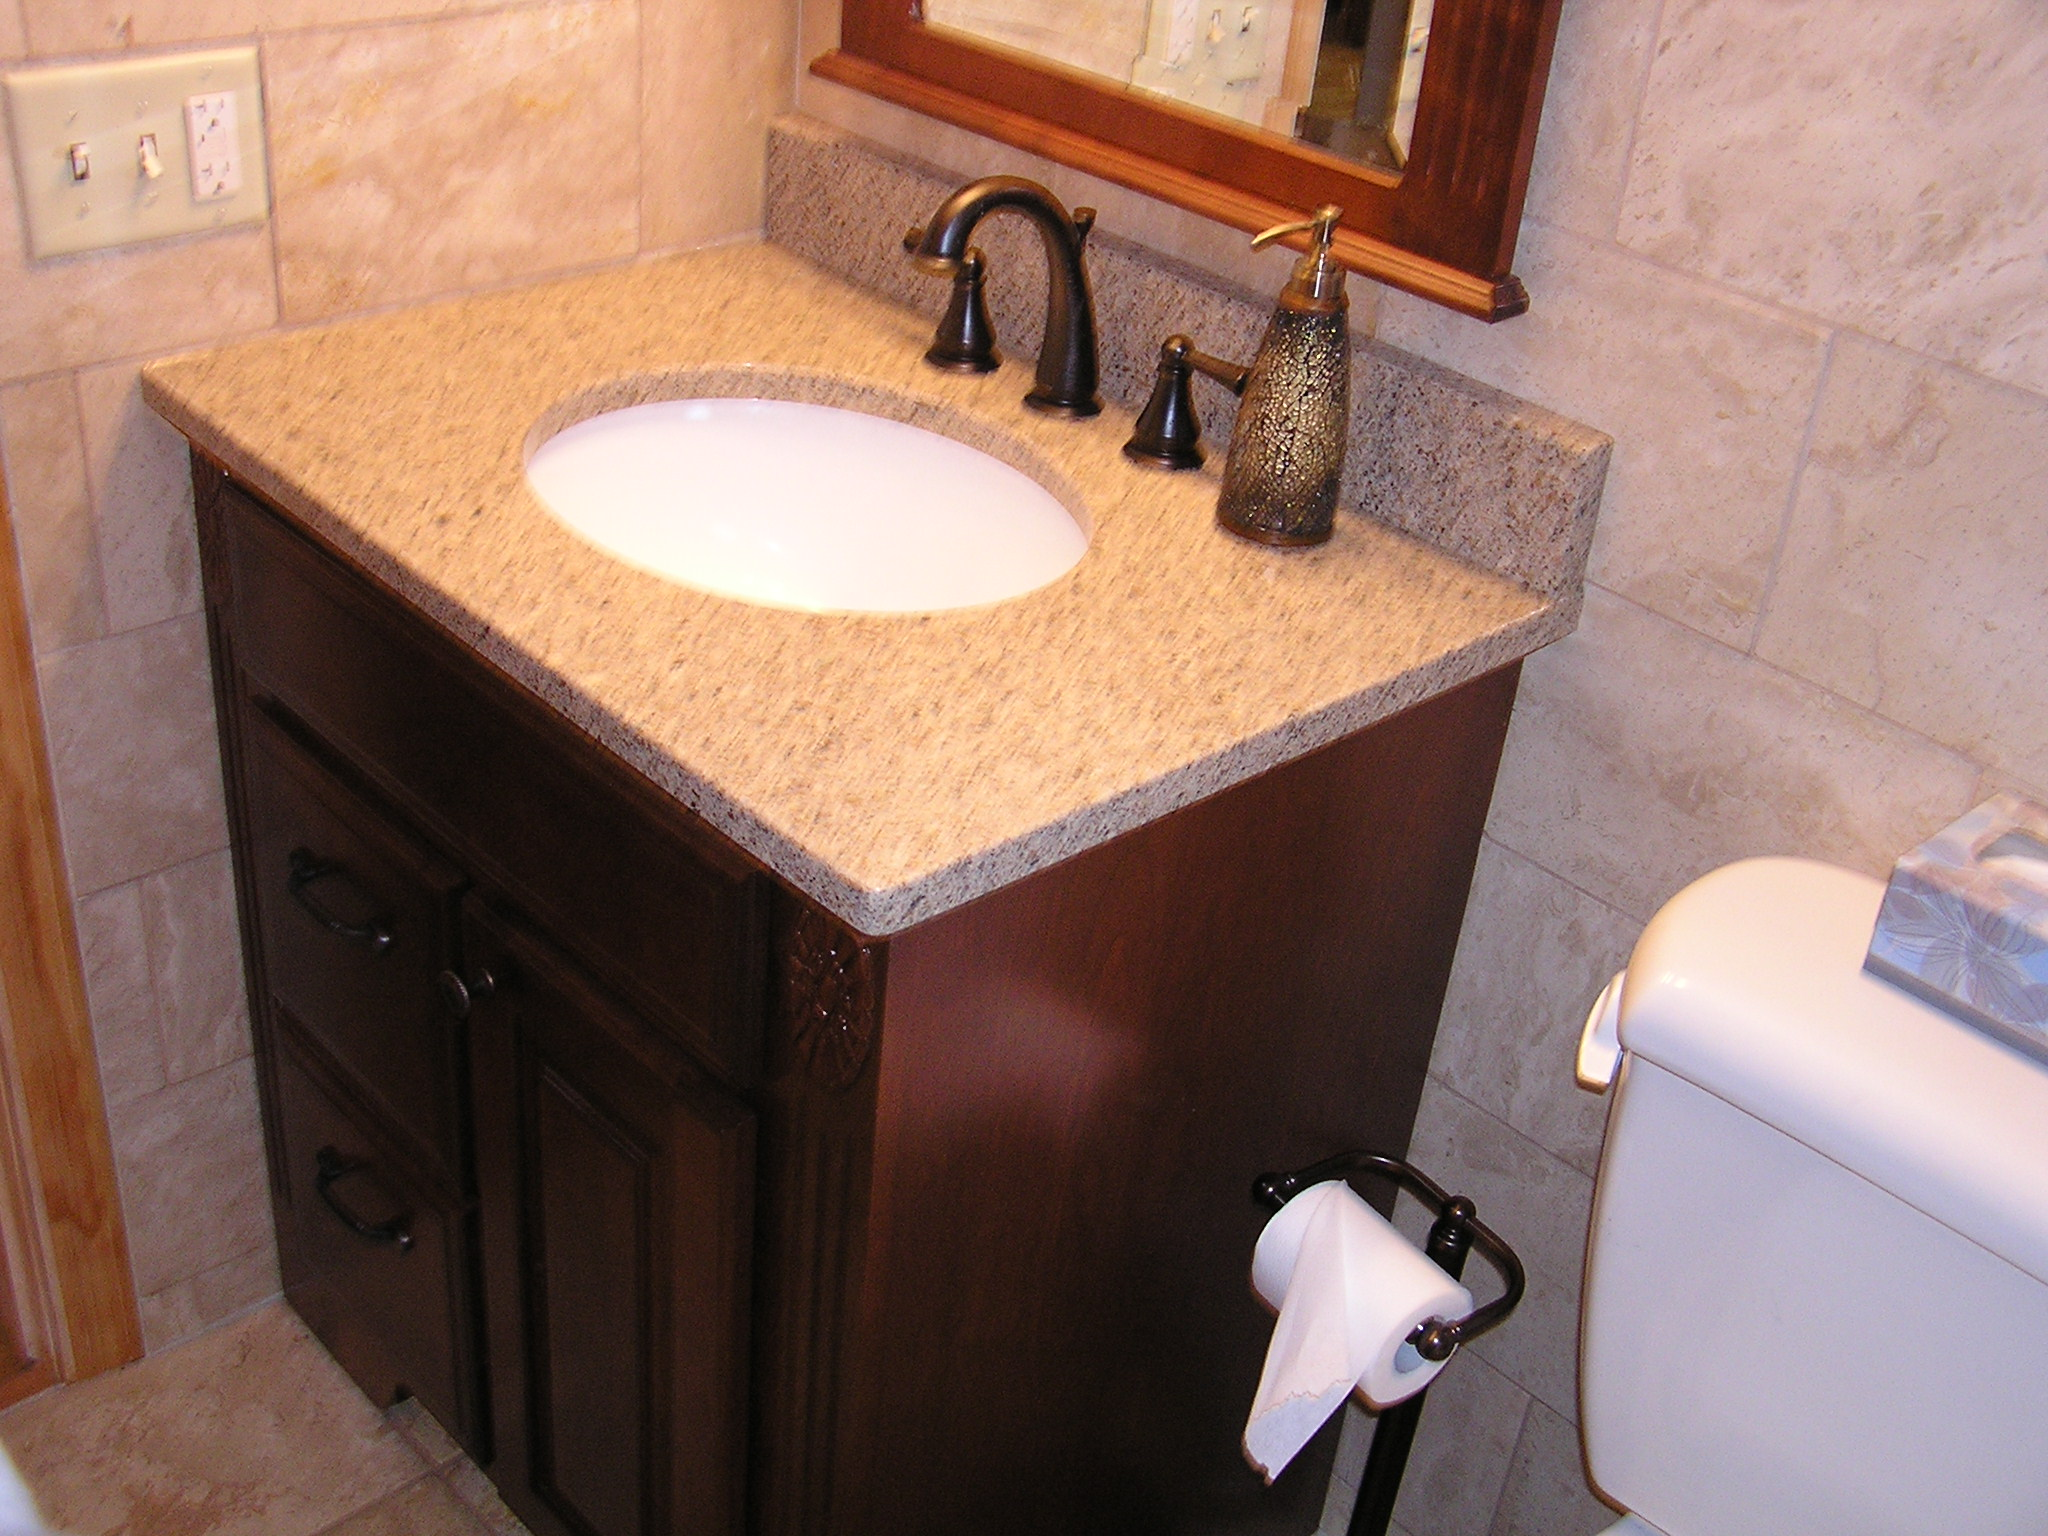 Bathroom Fixtures Twin Cities bathroom remodel with italian travertine tile - allrounder remodeling